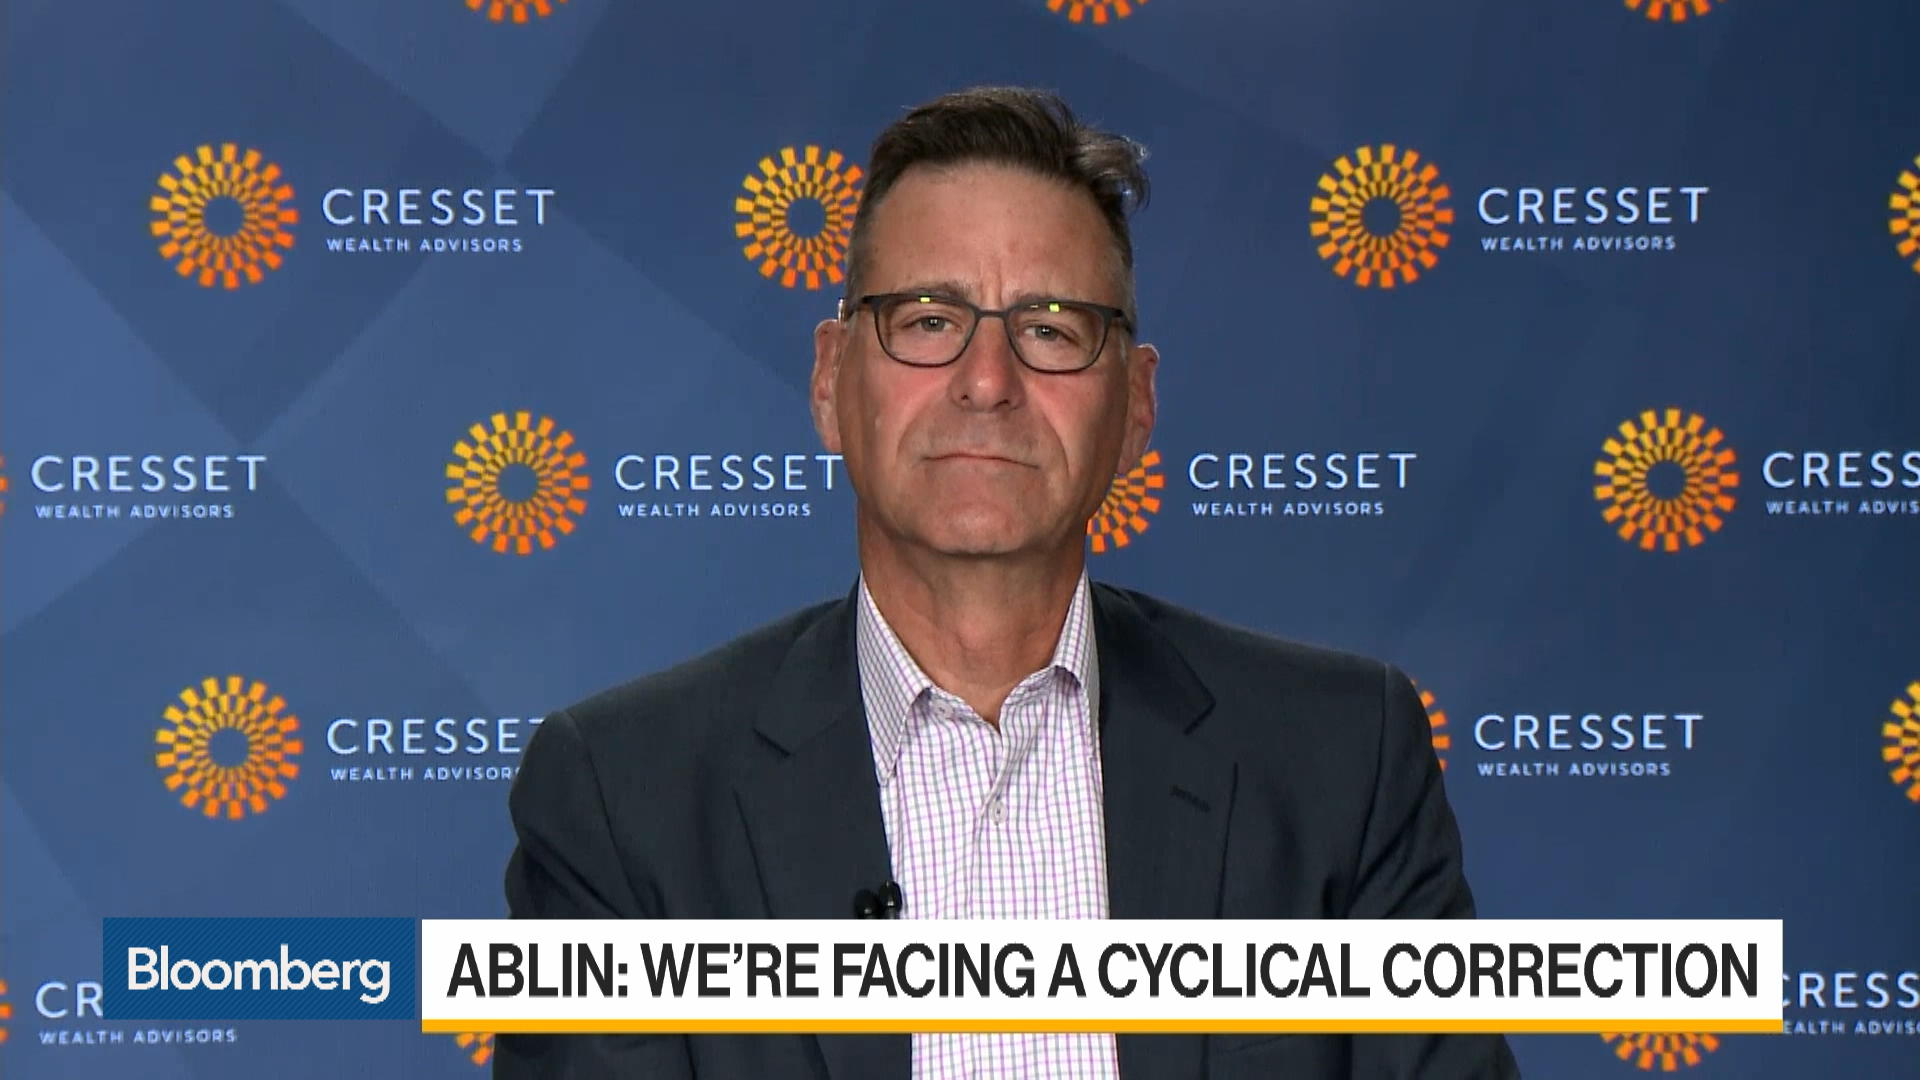 Short-Maturity Bonds Are Fairly Priced, Cresset Wealth CIO Says